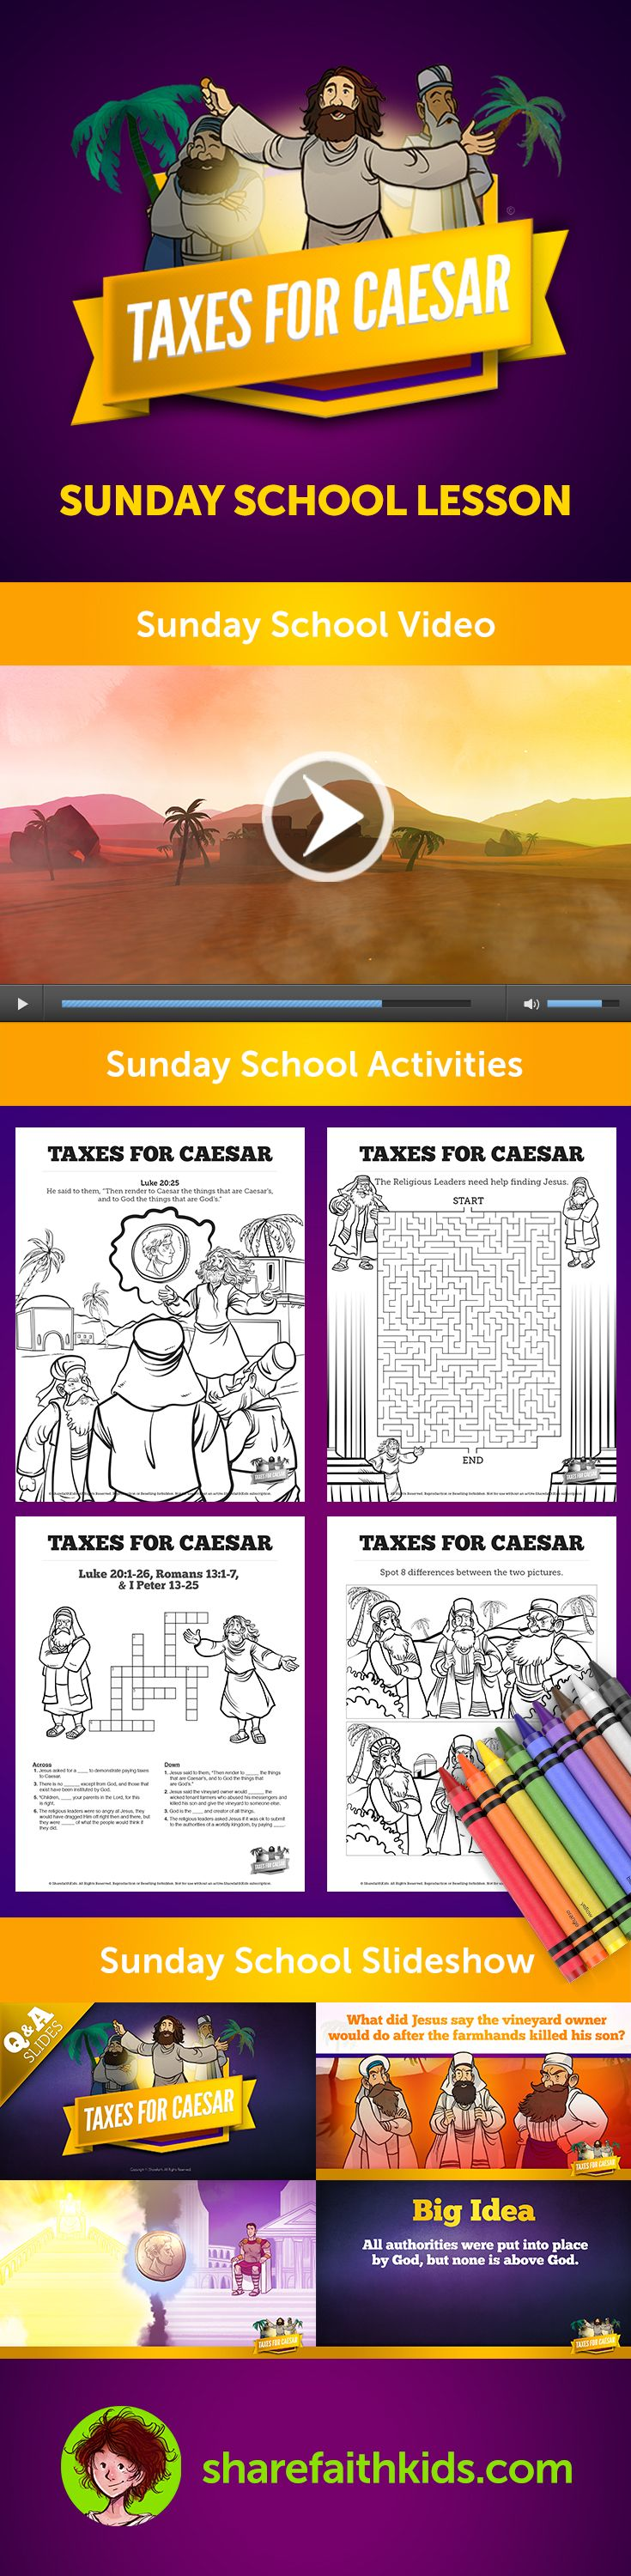 Luke 20 Taxes For Caesar Kids Bible Story: Taxes for Caesar (Luke 20) This powerful Sunday School lesson is drawn from Luke 20, where Jesus delivers a timeless lesson about authority. Teach your children the importance of showing respect to parents, teachers, leaders and, most of all, God!